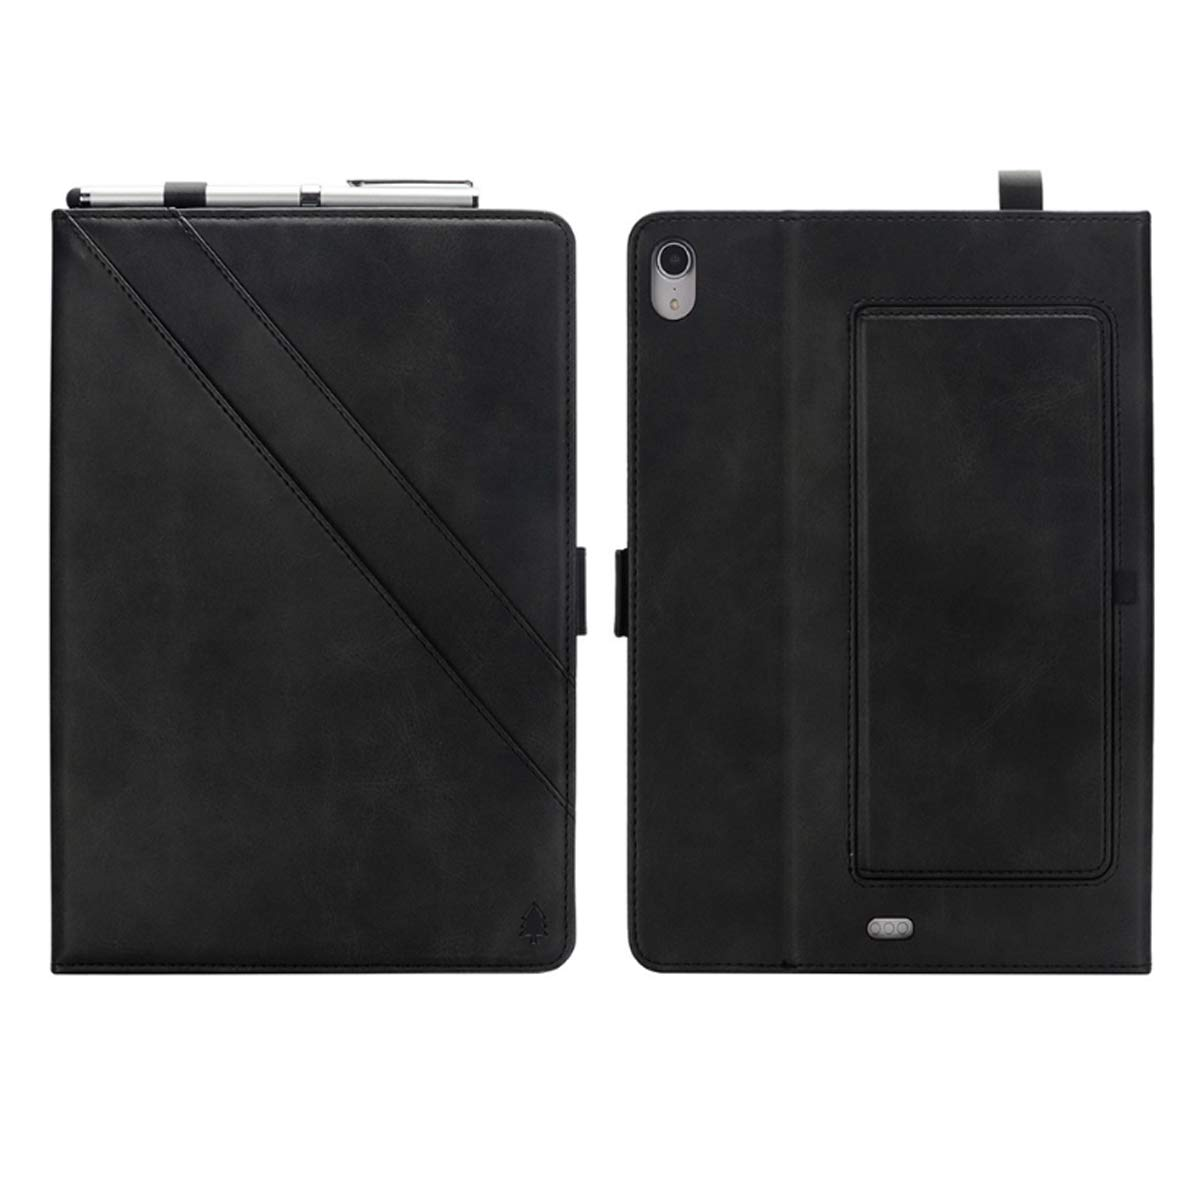 KATEGY iPad Pro 11 Inch Case with Pencil Holder, Premium PU Leather Folio Case with Apple Pencil Strap Holder and Card Slots Magnetic Smart Case Cover for iPad Pro 11 inch 2018 Release - Black by KATEGY (Image #3)